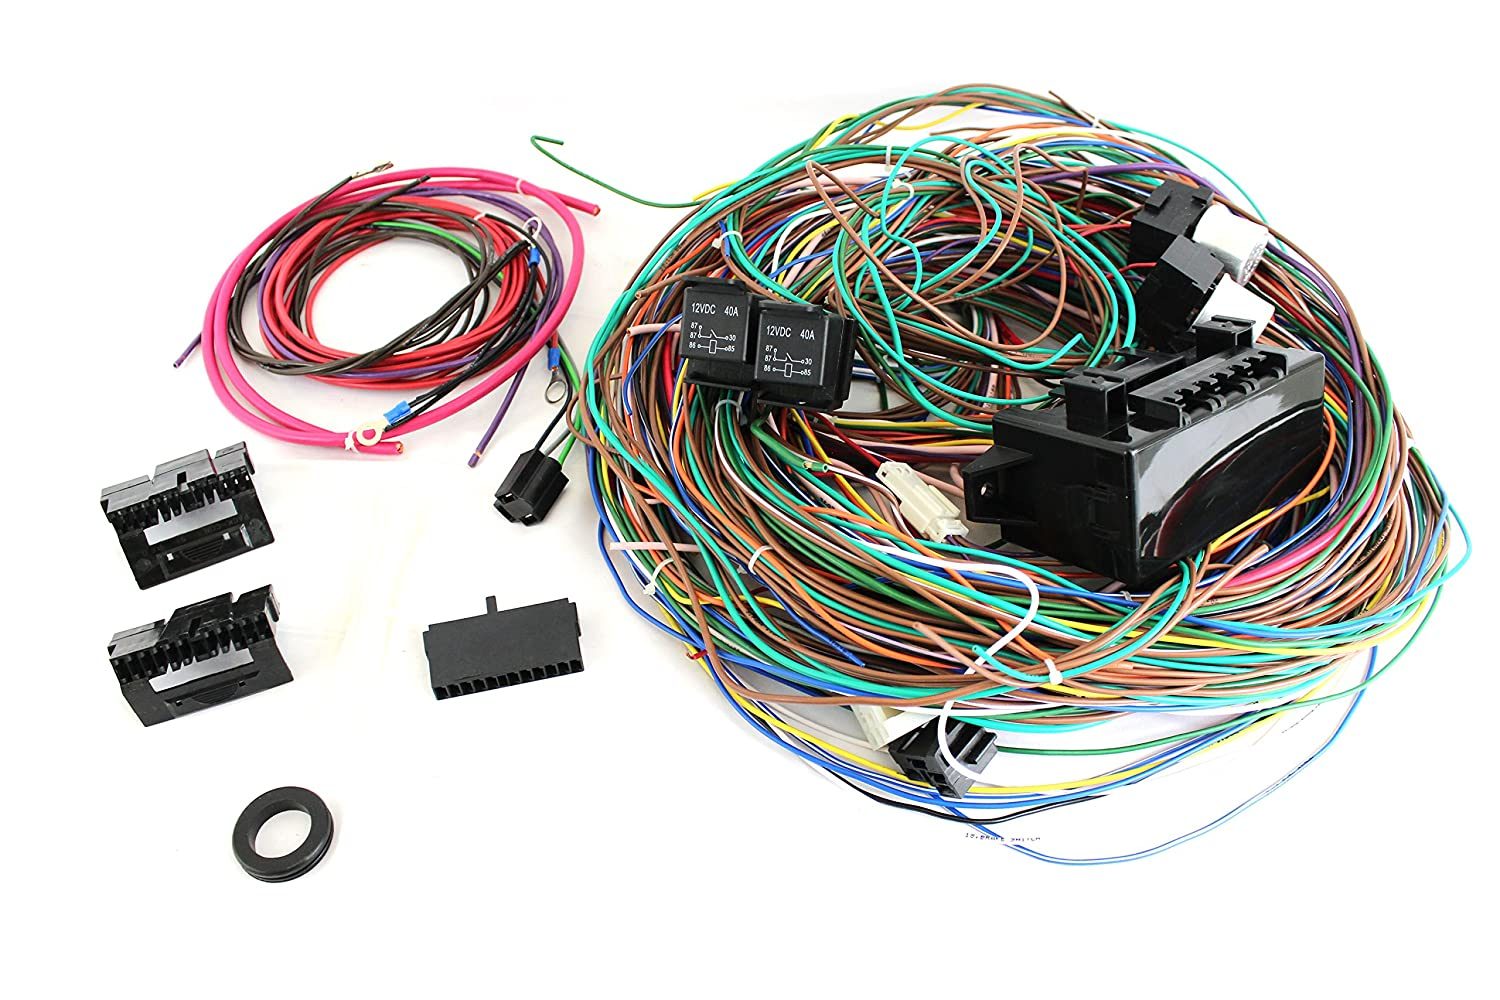 91YoamXFx2L._SL1500_ amazon com 12v 24 circuit 15 fuse street hot rat rod wiring street rod wiring harness at nearapp.co